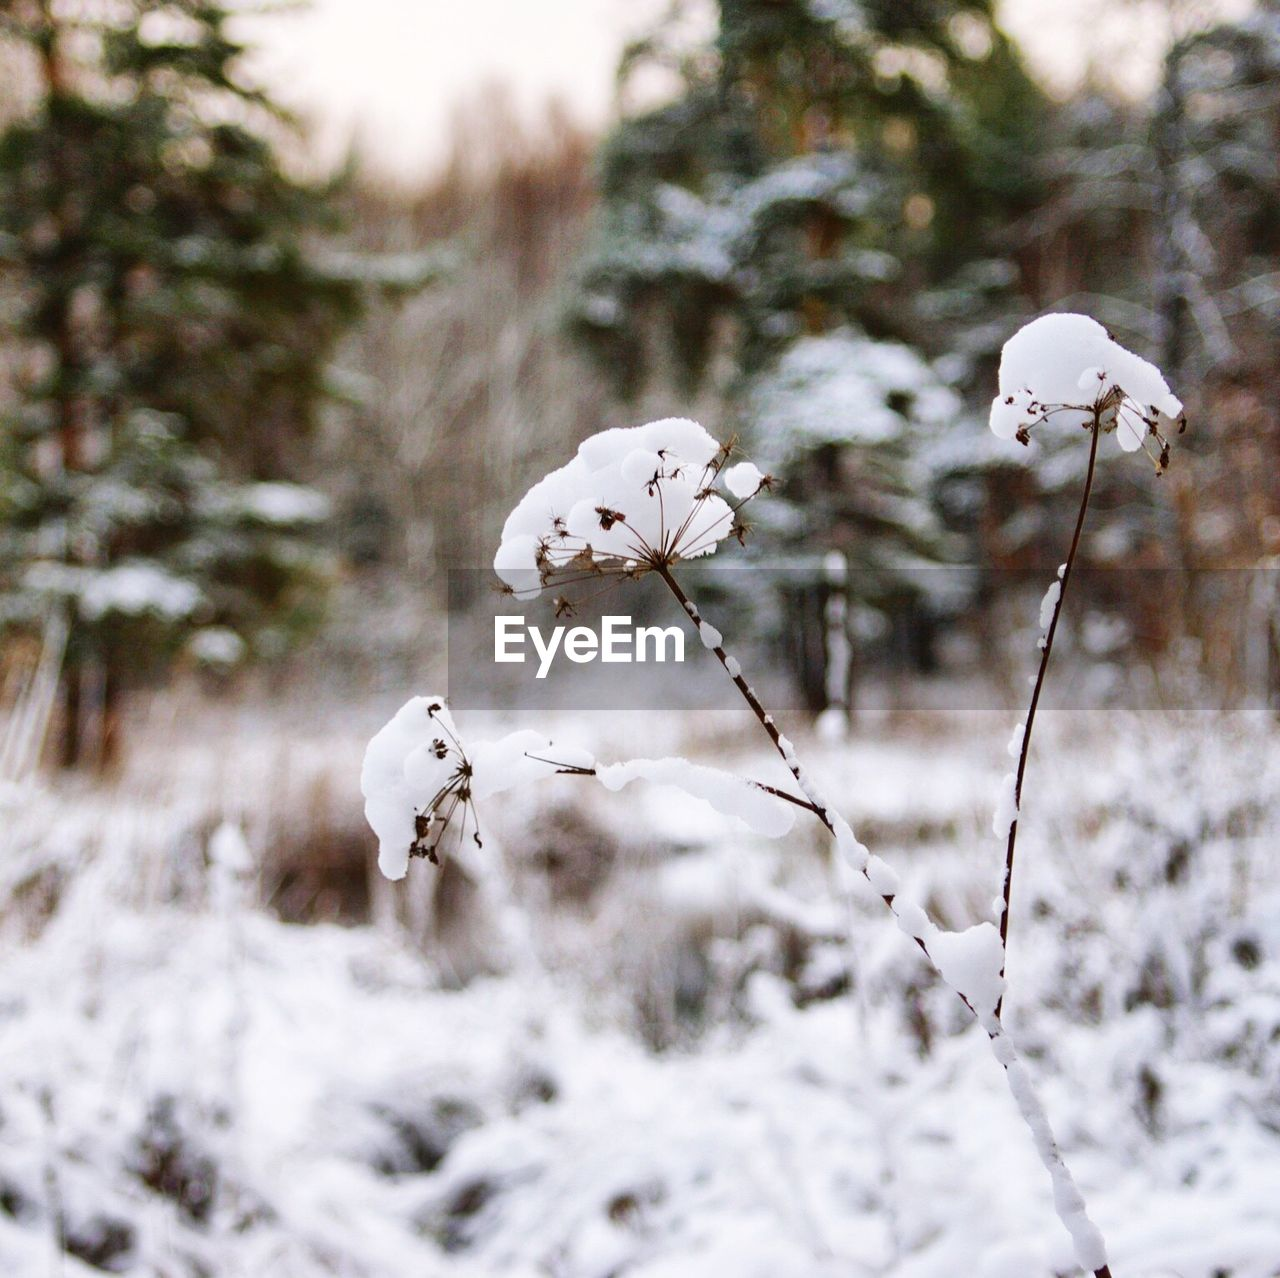 CLOSE-UP OF WHITE FLOWER ON SNOW COVERED TREE